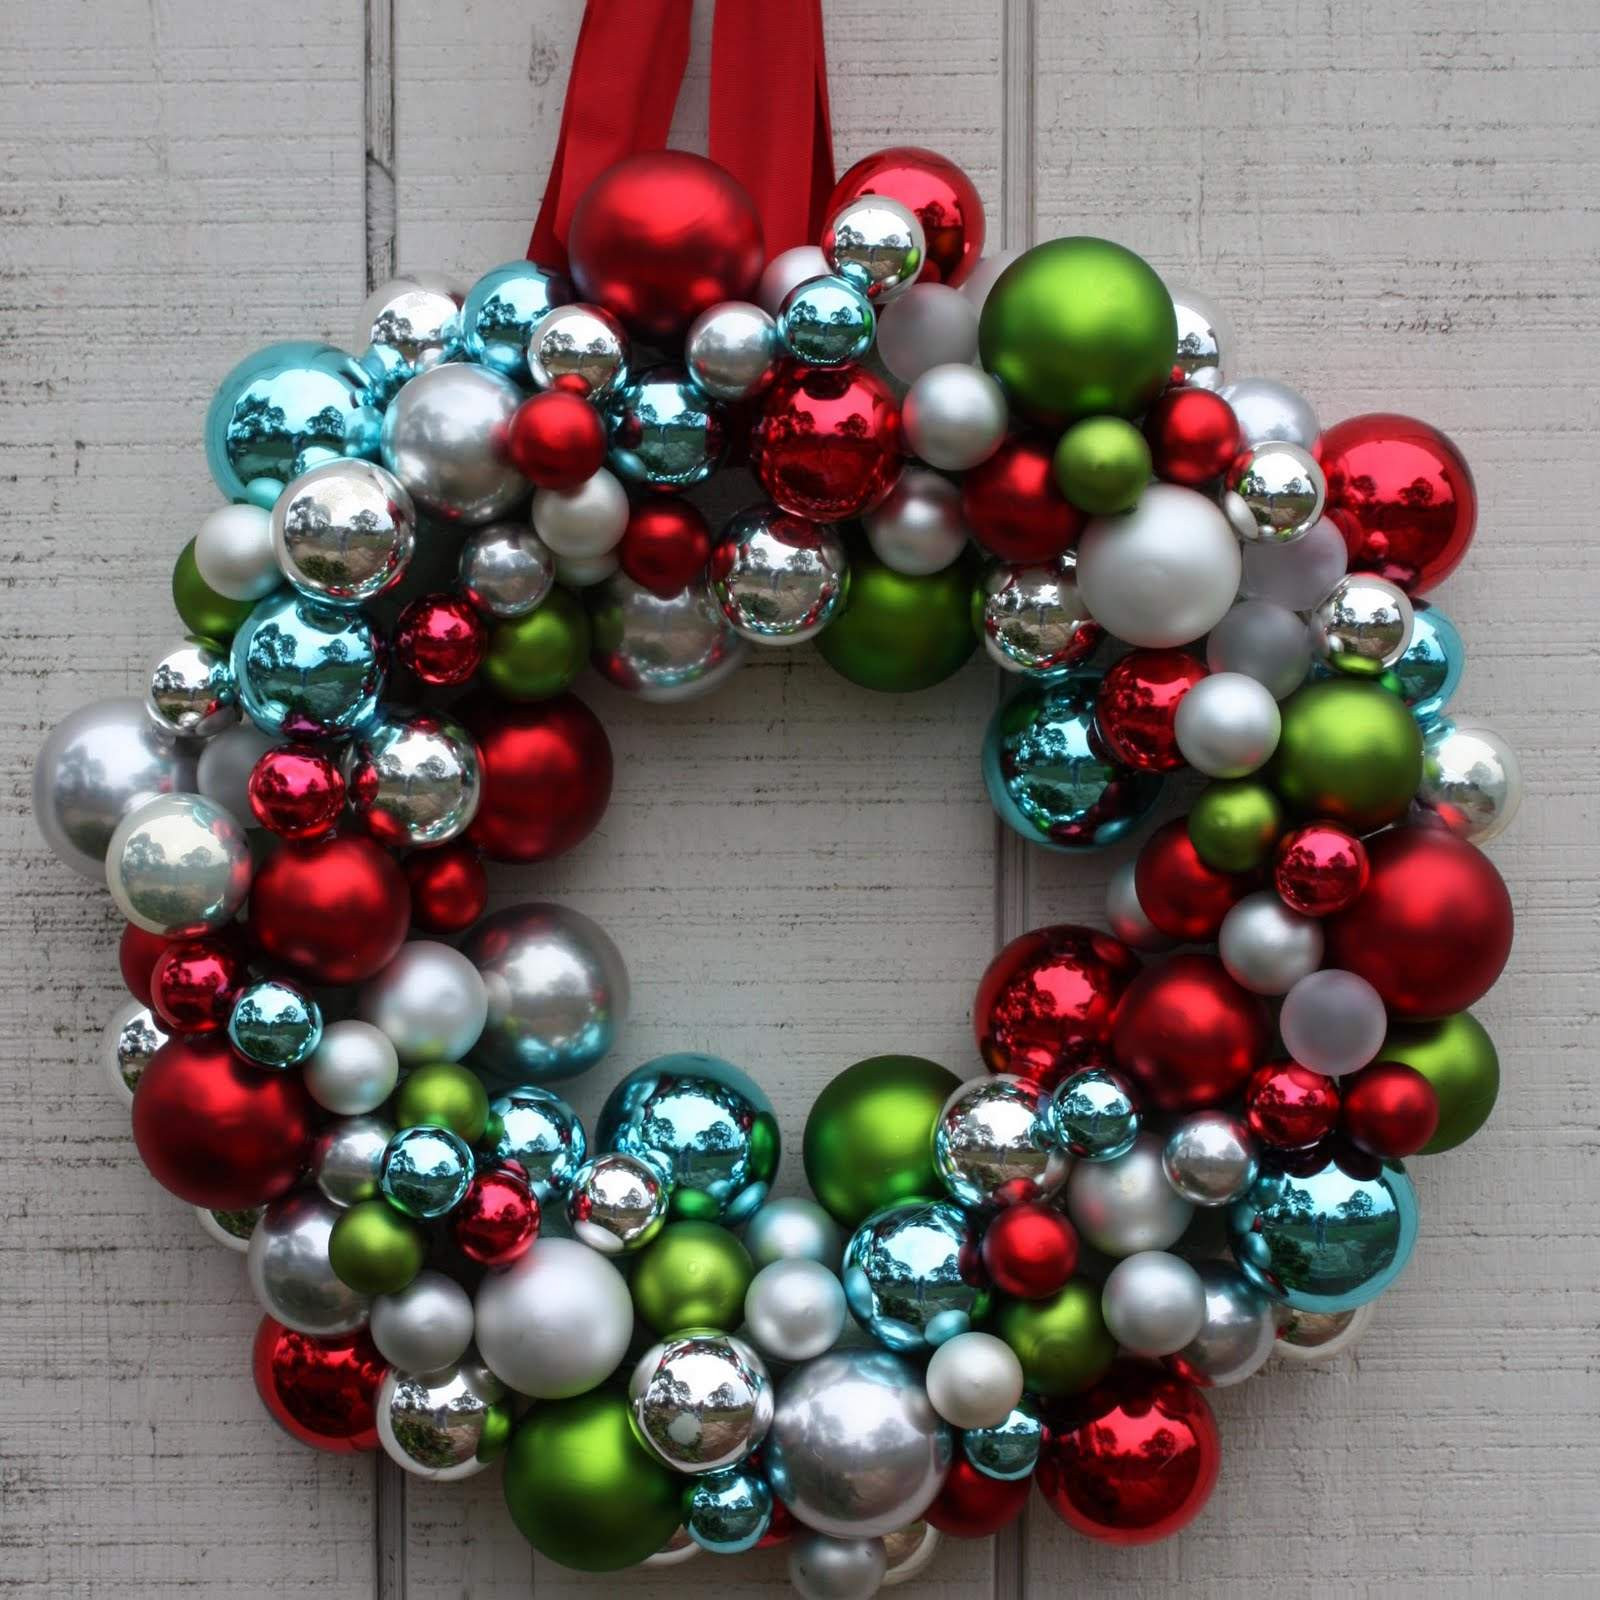 Christmas ornaments Beautiful How to Make A Christmas Wreath with ornaments Of Incredible 48 Images Christmas ornaments